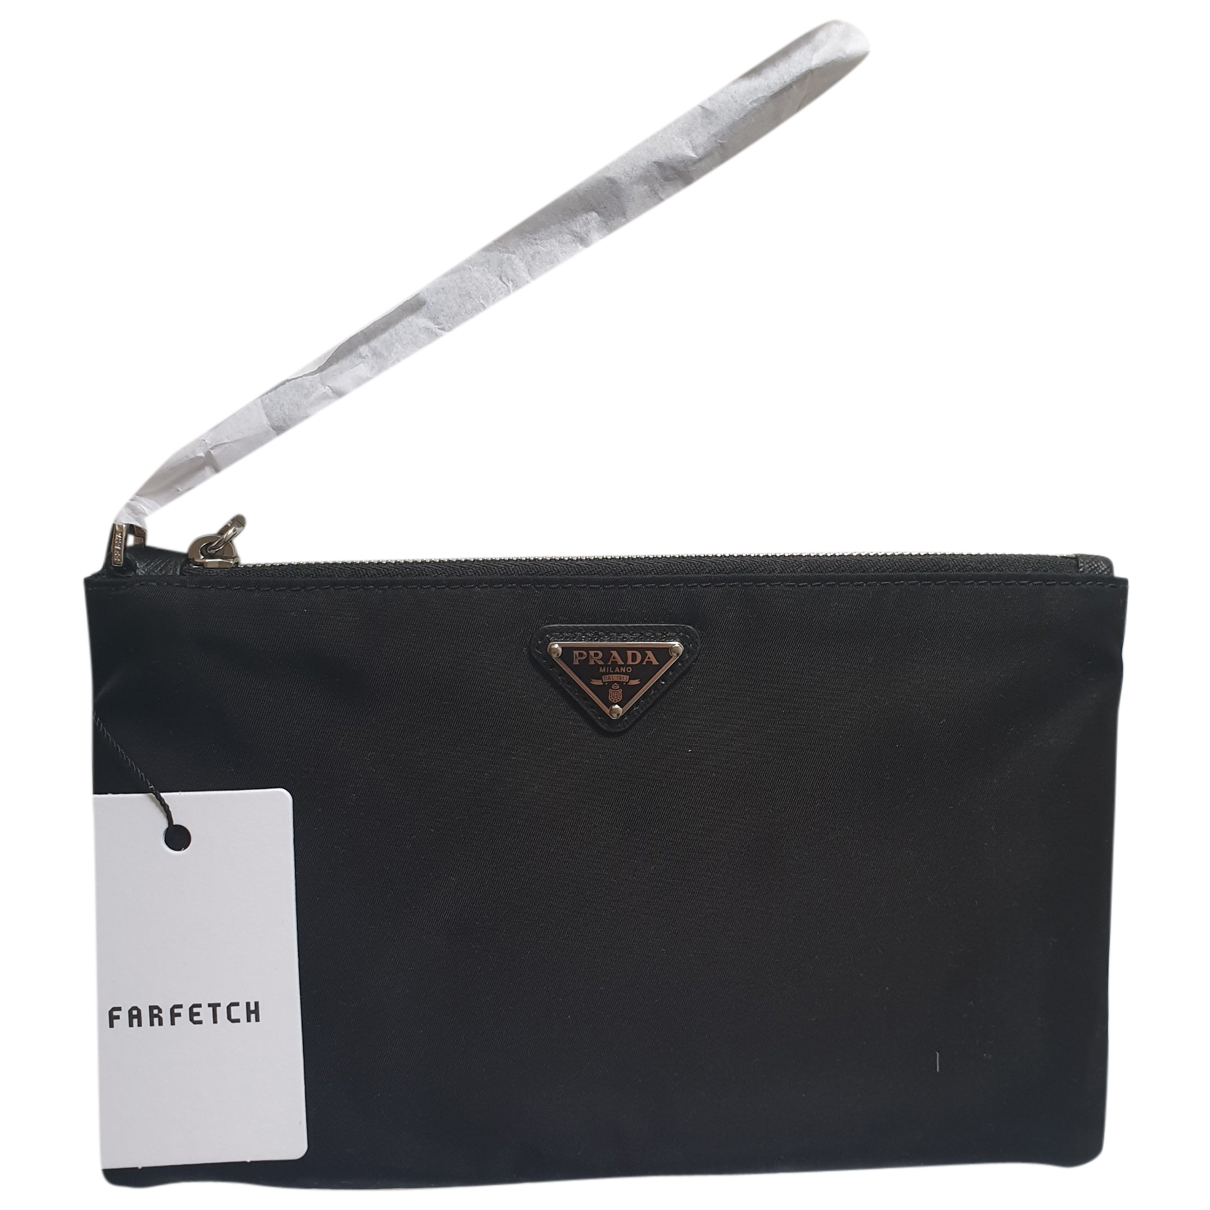 Prada Re-Nylon Clutch in  Schwarz Leinen